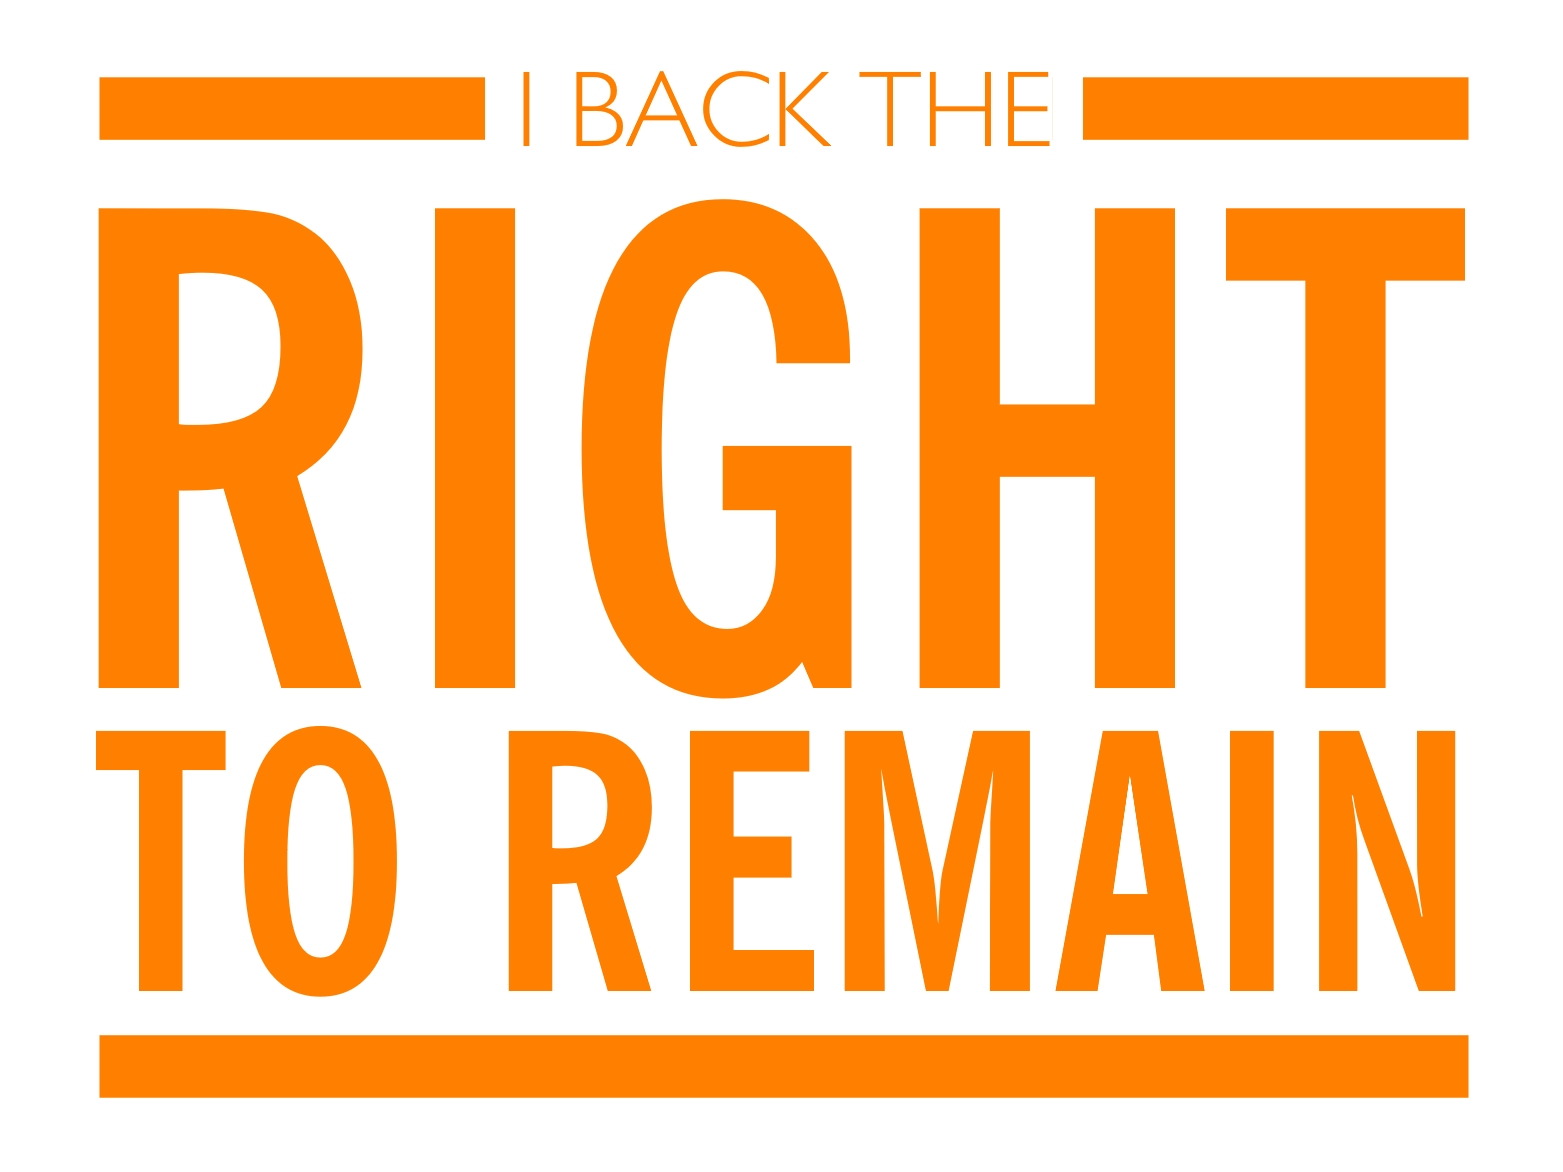 Template MyCouncillor post: Labour's 'Right to Remain' shambles